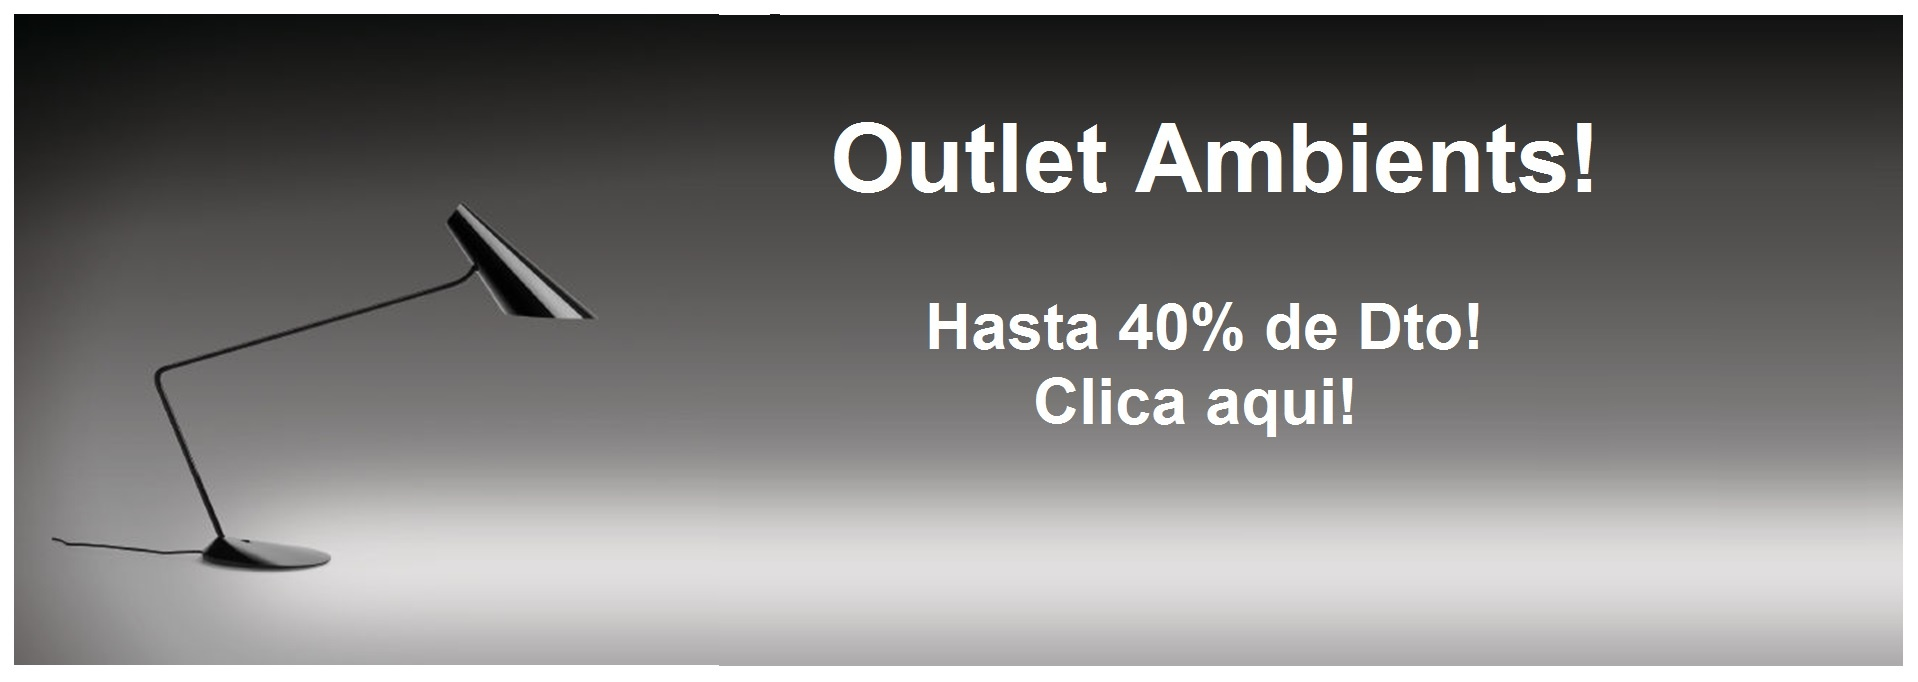 Outlet Ambients